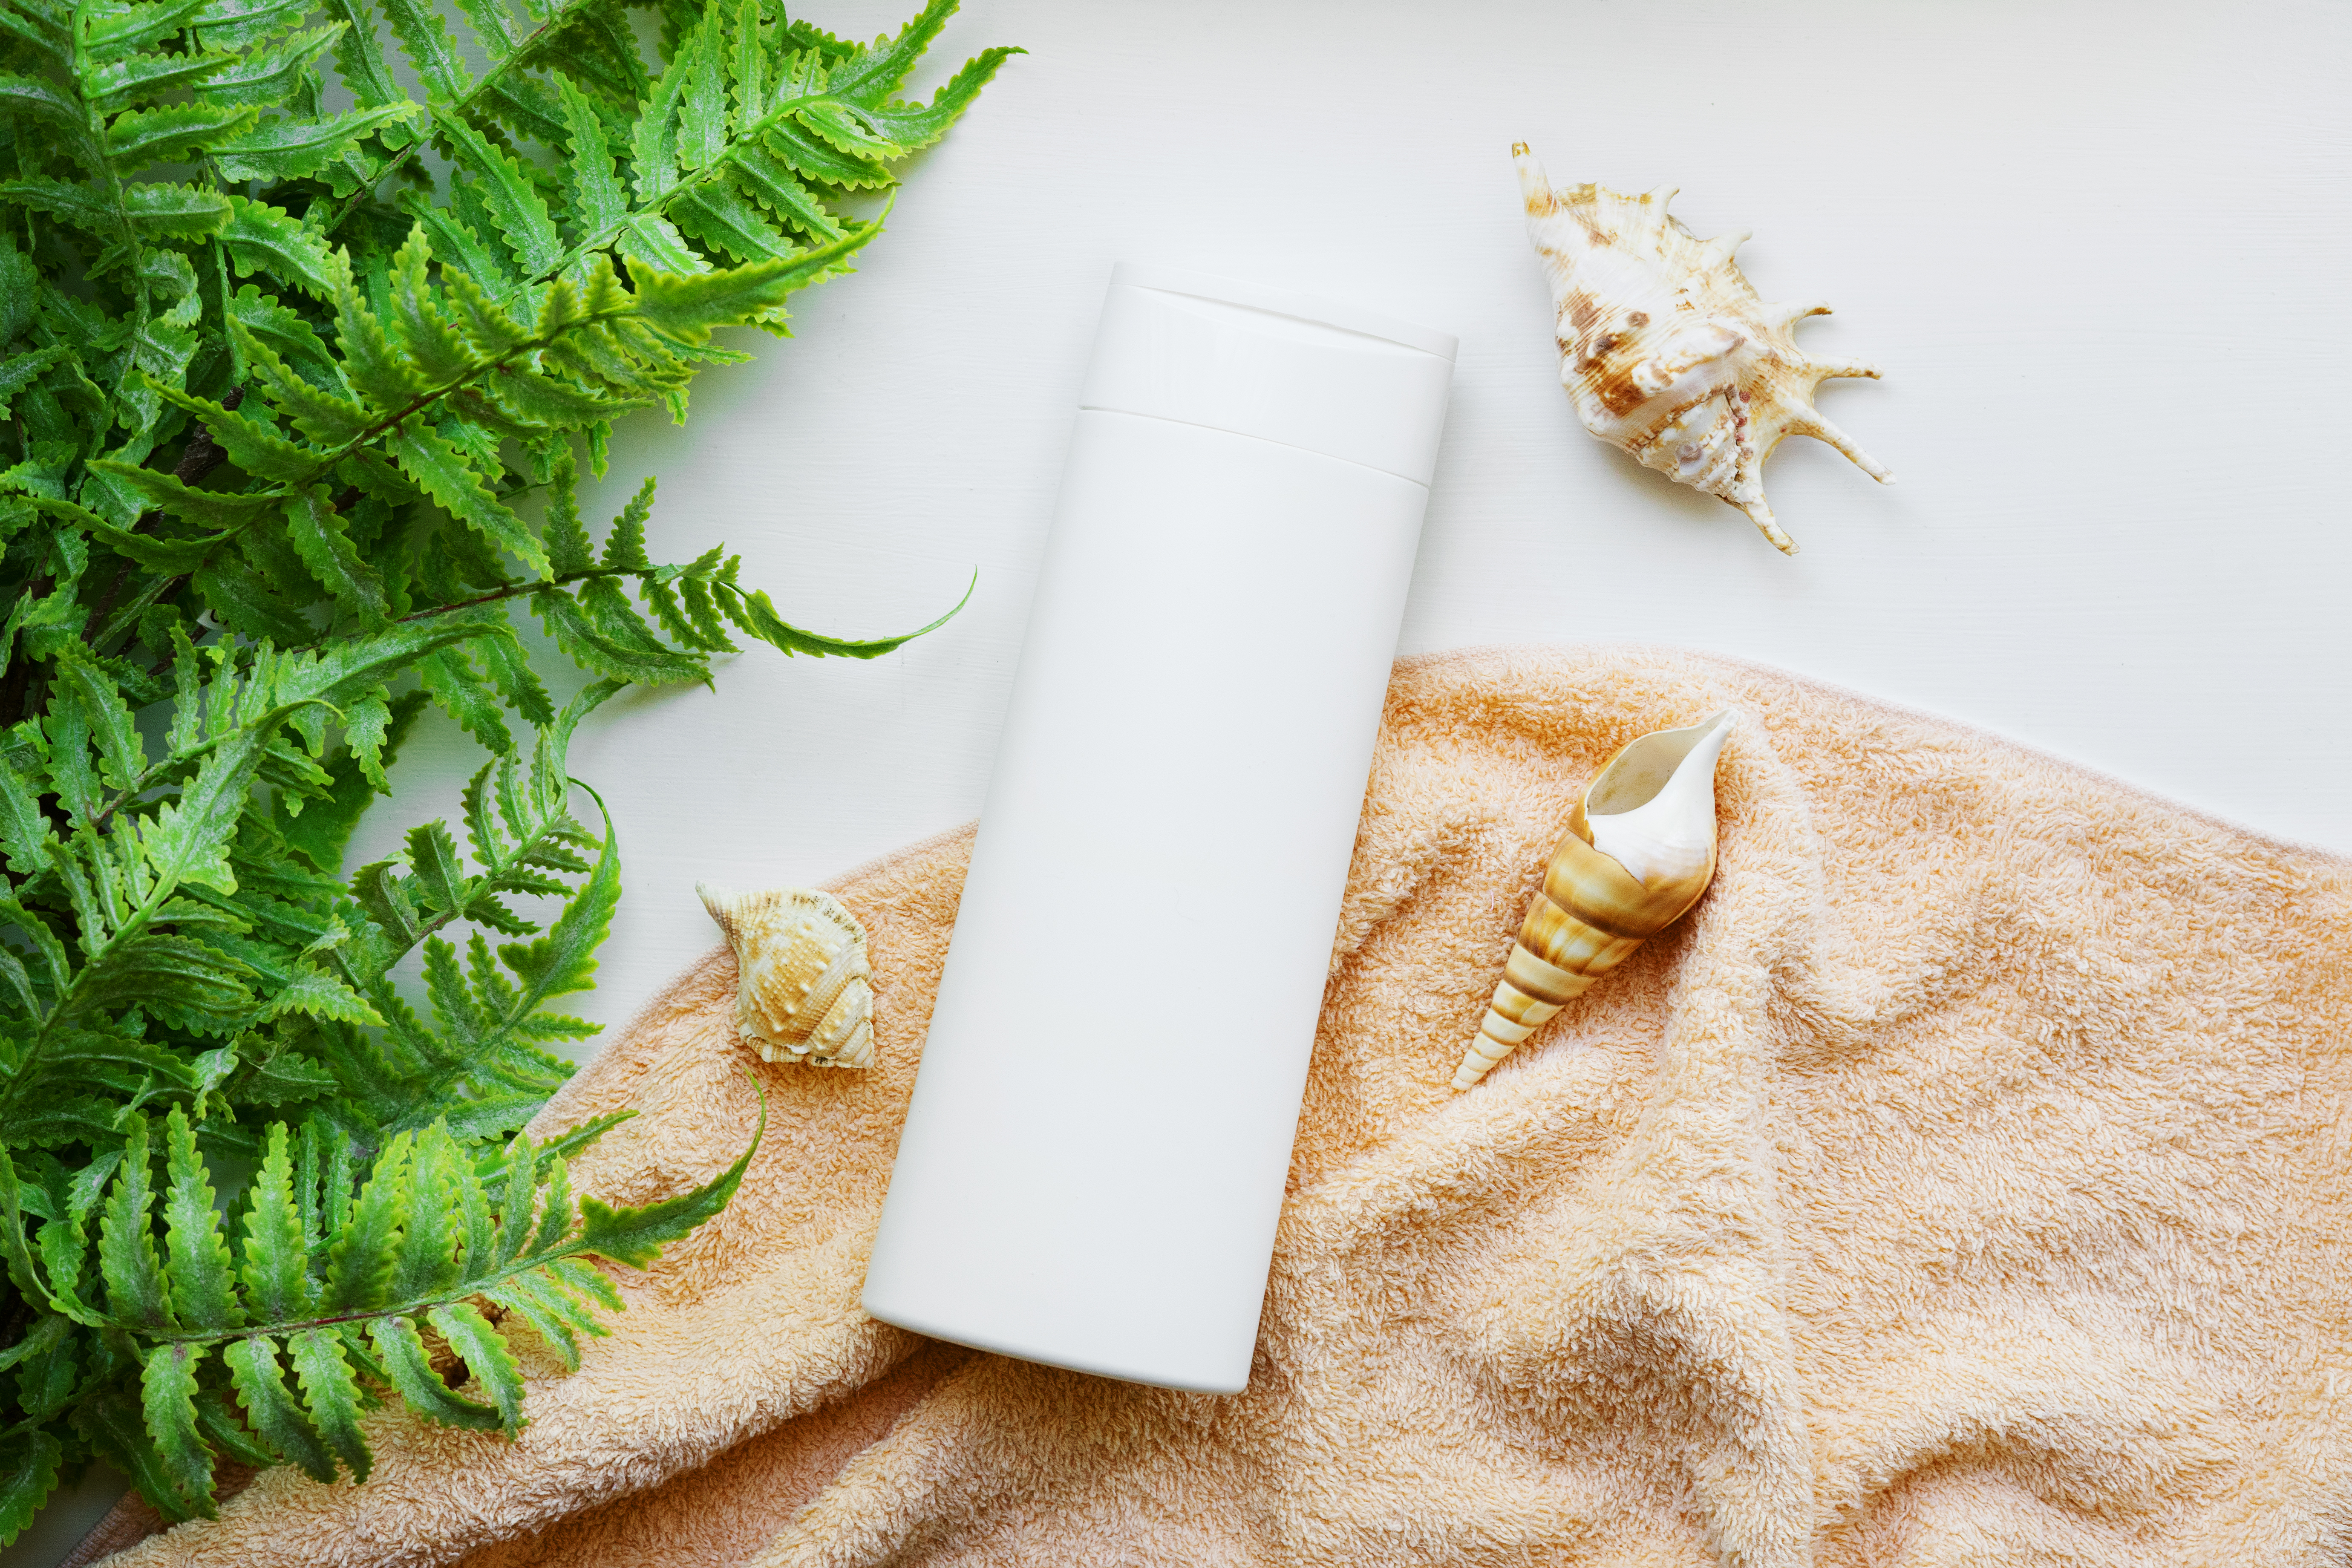 white-bottle-brand-free-shampoo-beige-towel-with-shells-seaweed-hair-care-products-with-marine-elements